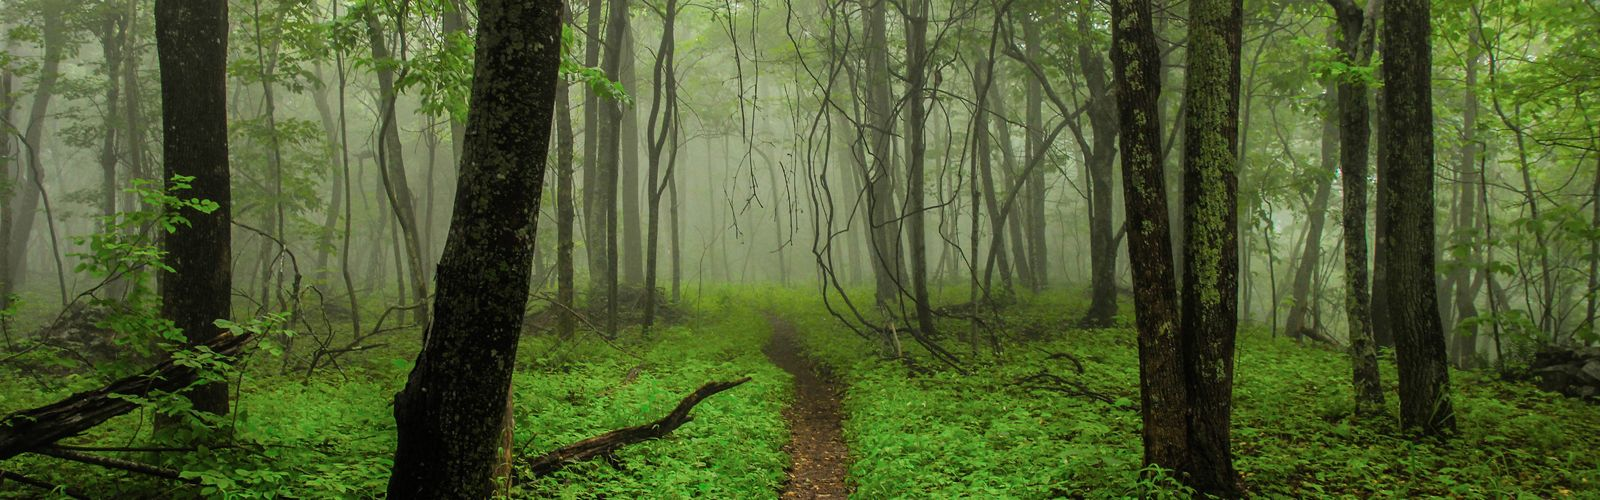 "This picture beautifully illustrates what is known as ""The Green Tunnel"" on the Appalachian Trail. On the morning of June 4th of 2015 I captured this image in Virginia while thru hiking the Appalachian Trail. The lush vegetation and whimsical fog embodied everything I love about nature. When I view this image I am temporarily transported back into the forest."